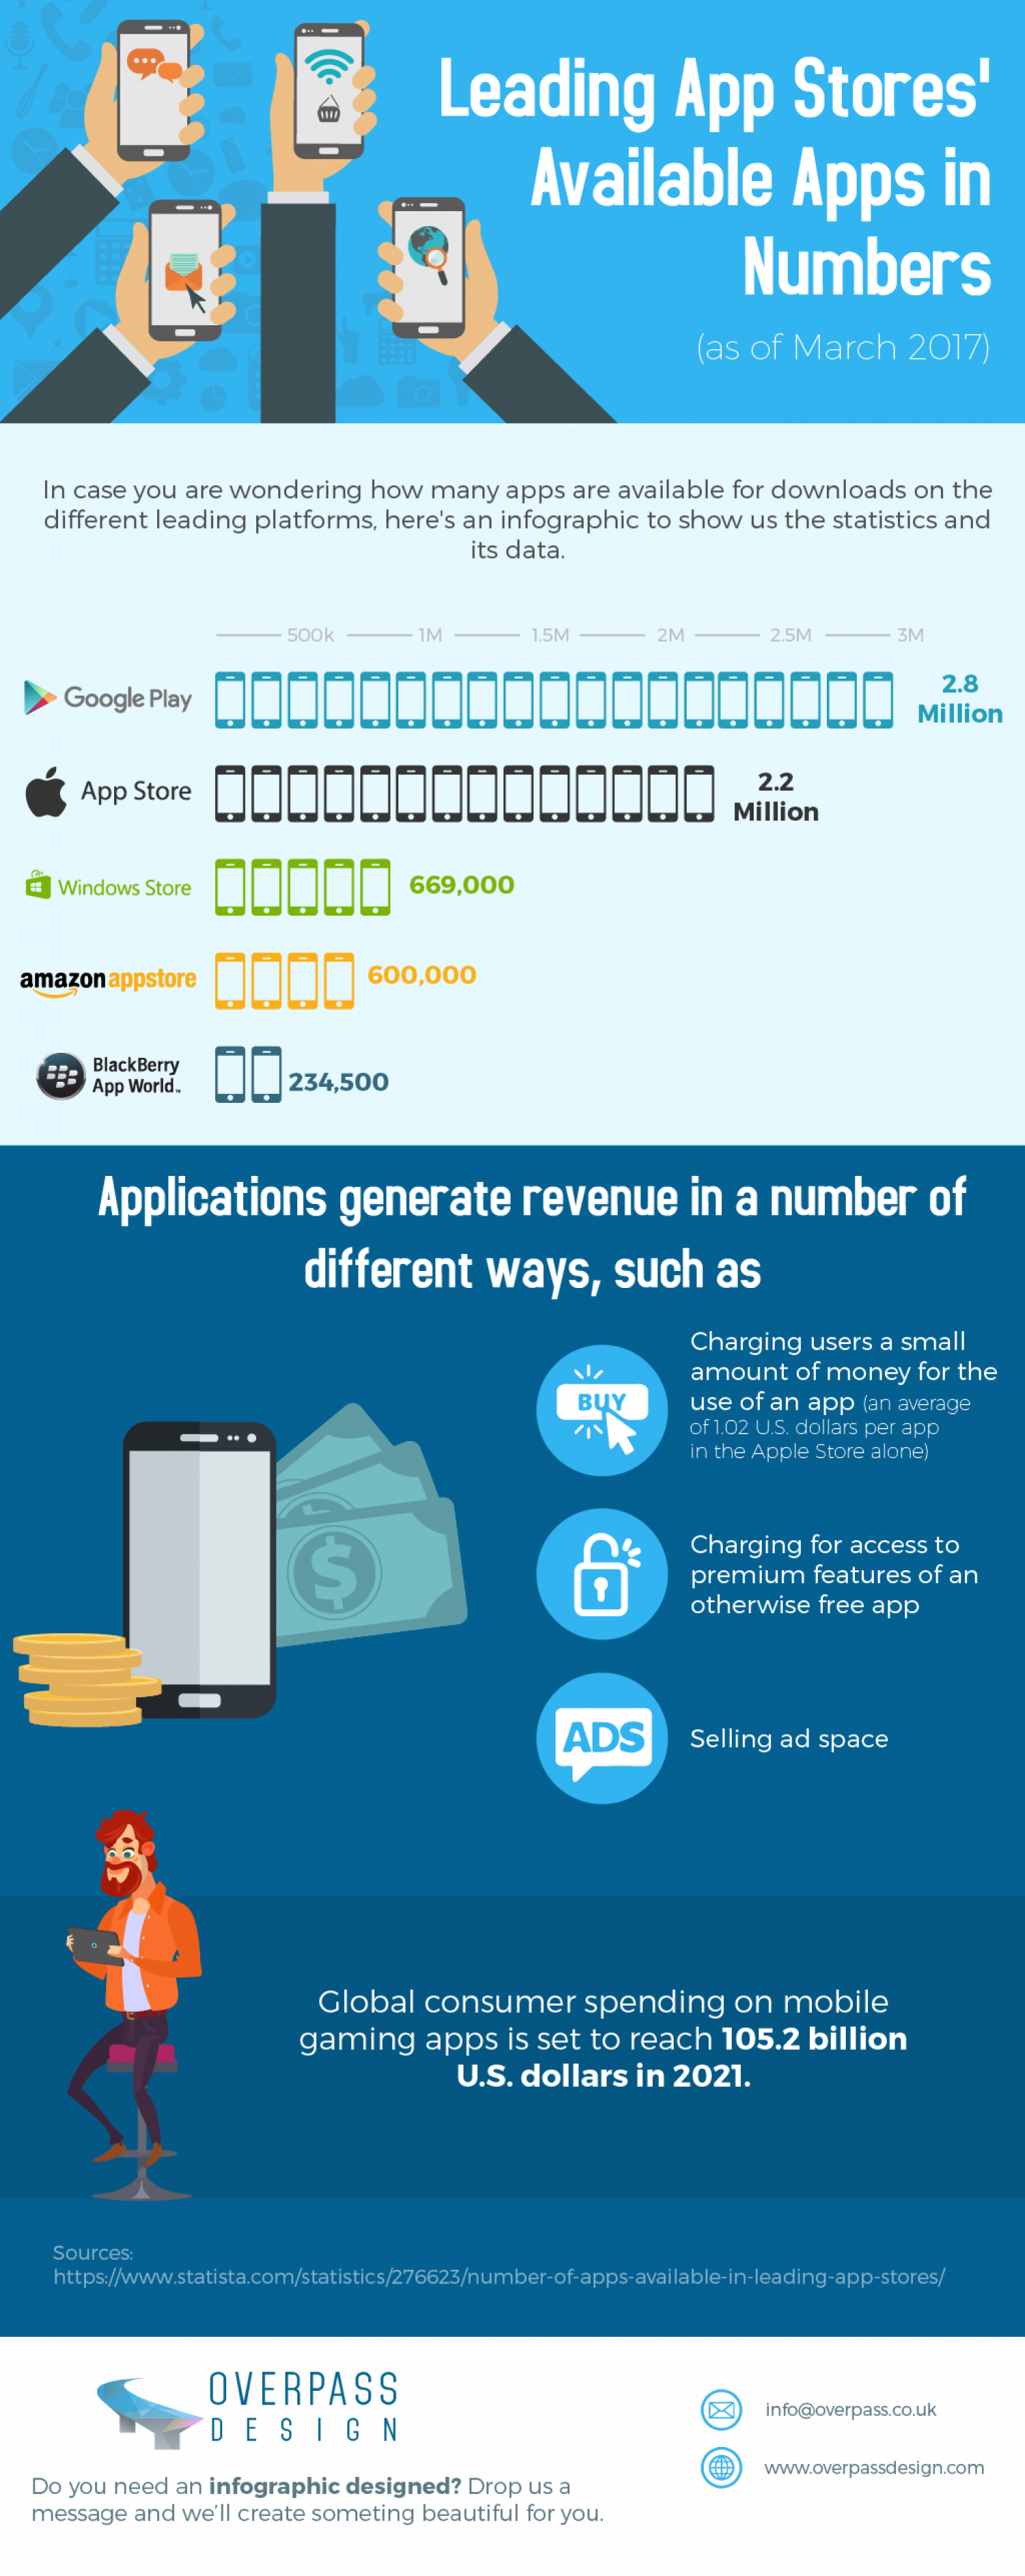 Infographic: Leading App Stores' Available Apps in Numbers (as of March 2017) Infographic